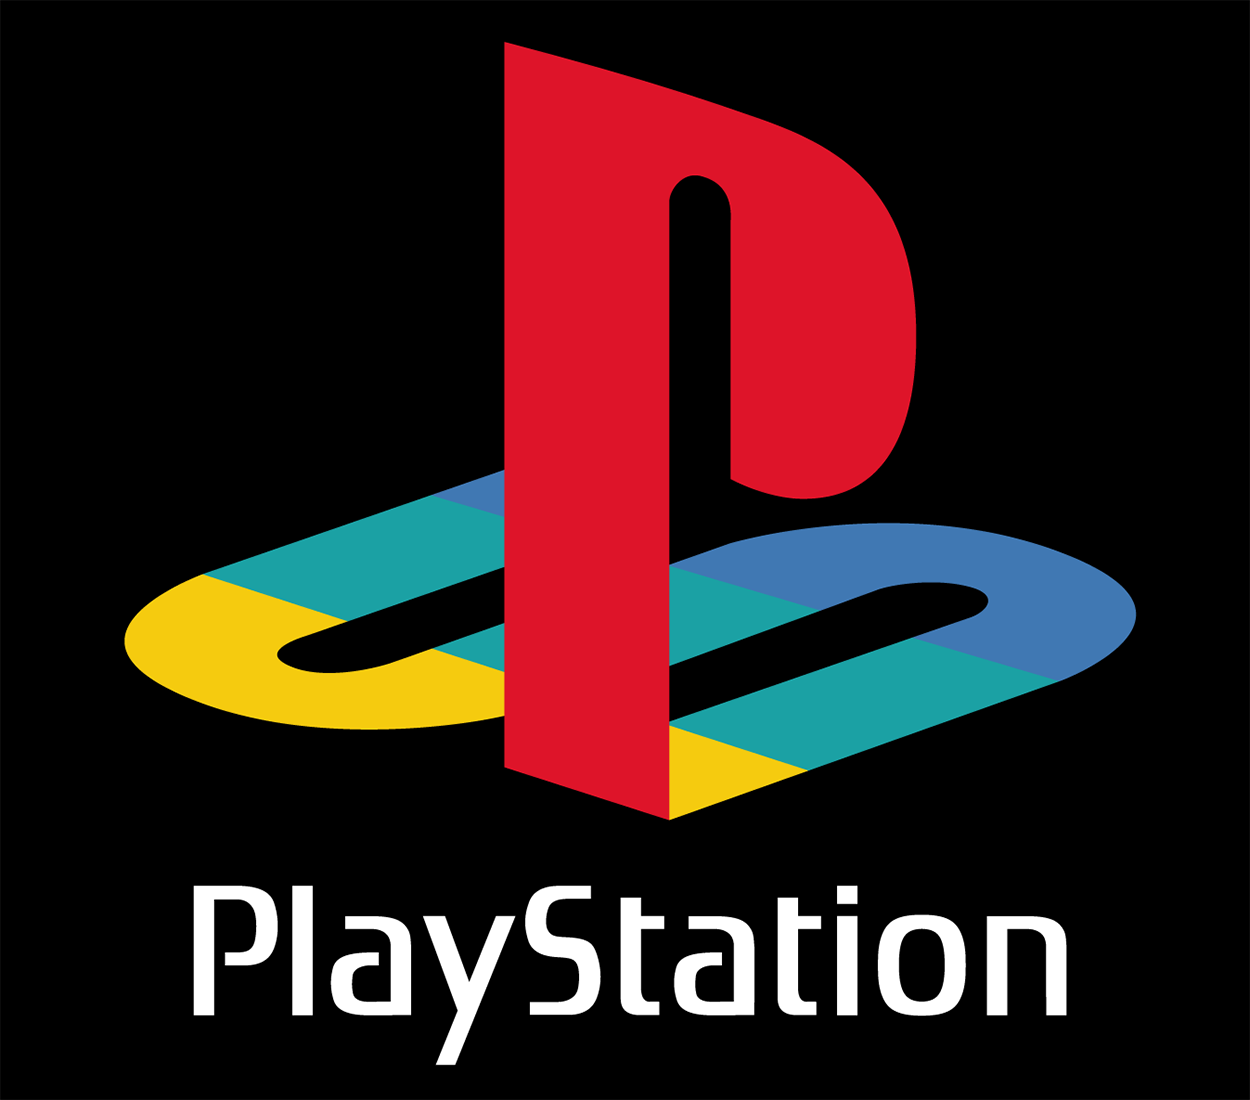 PlayStation Logo And Symbol, Meaning, History, PNG